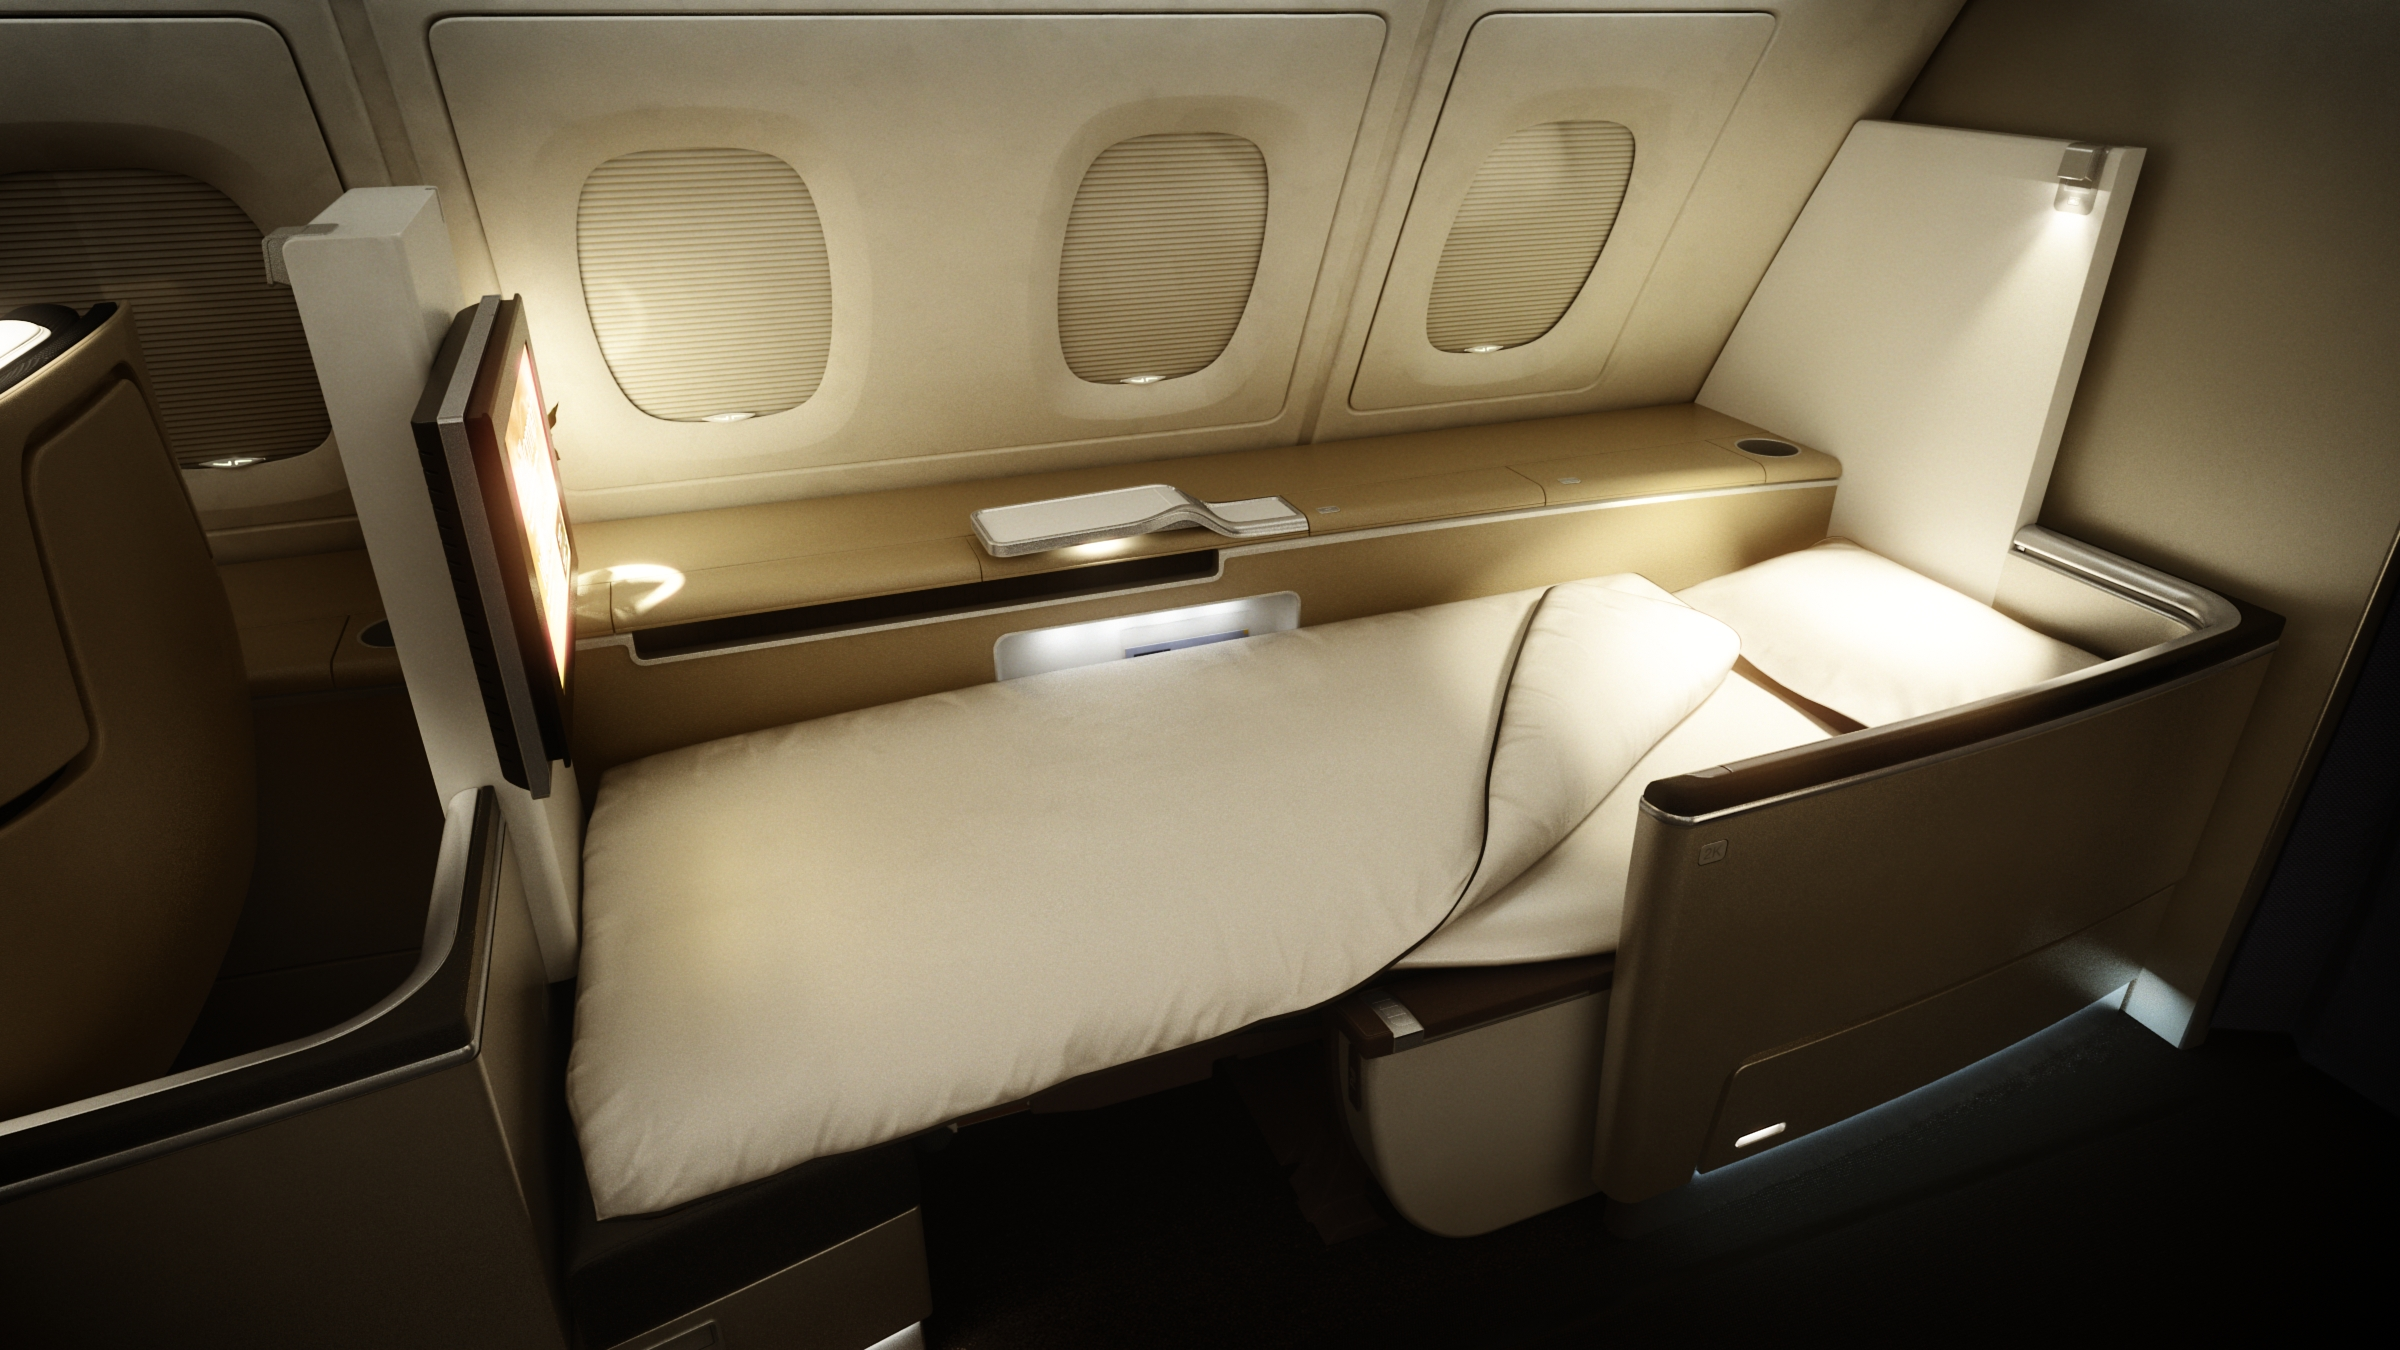 Lufthansa First Class Cabin on its A380.